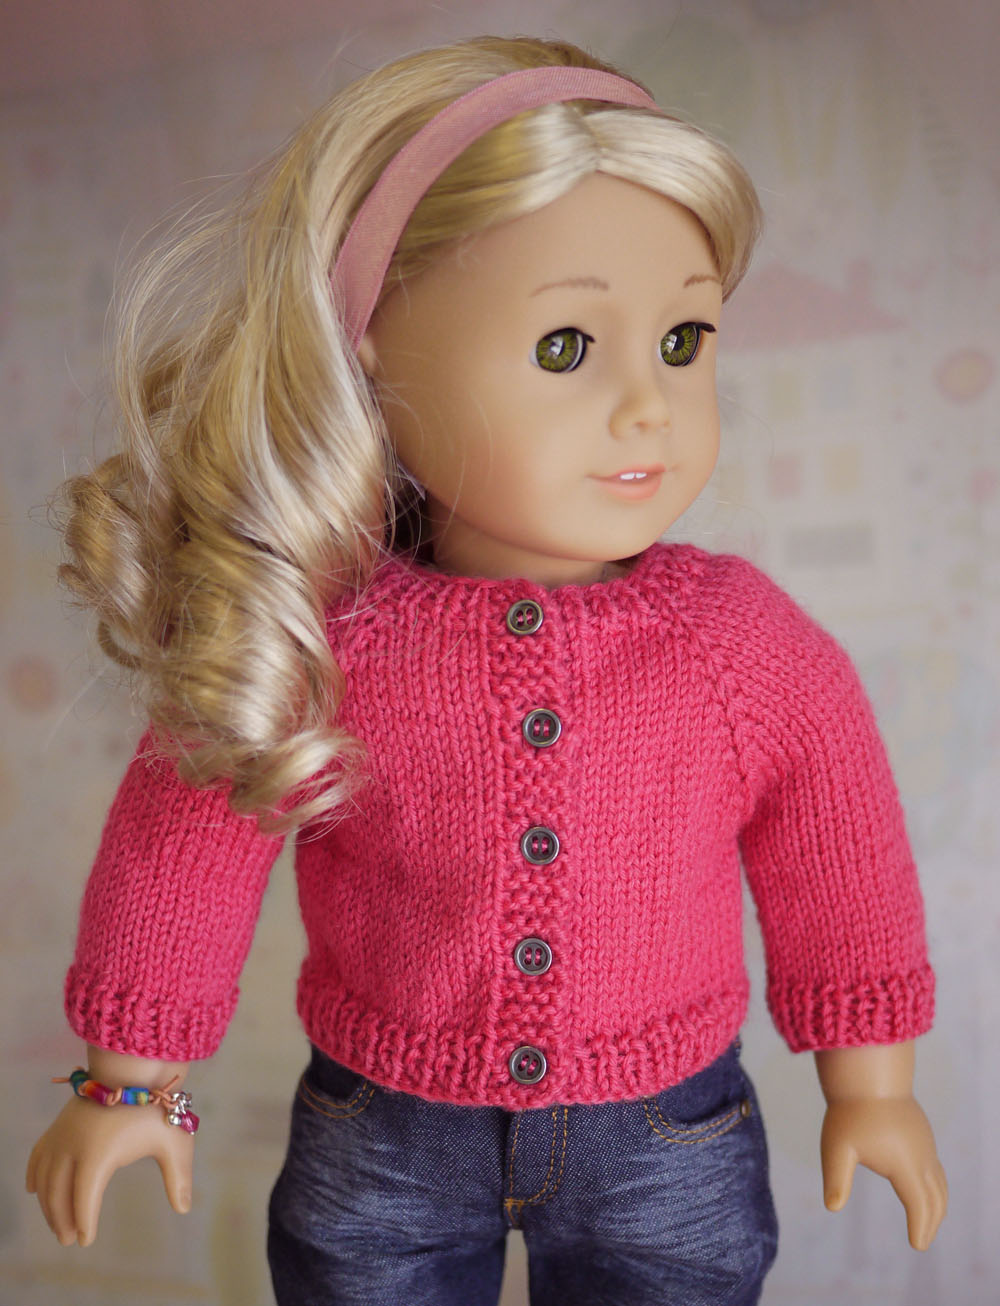 Free Knitting Patterns Girls : American Girl Doll Cardigan Sweater Knitting Pattern Cindy Rice Designs